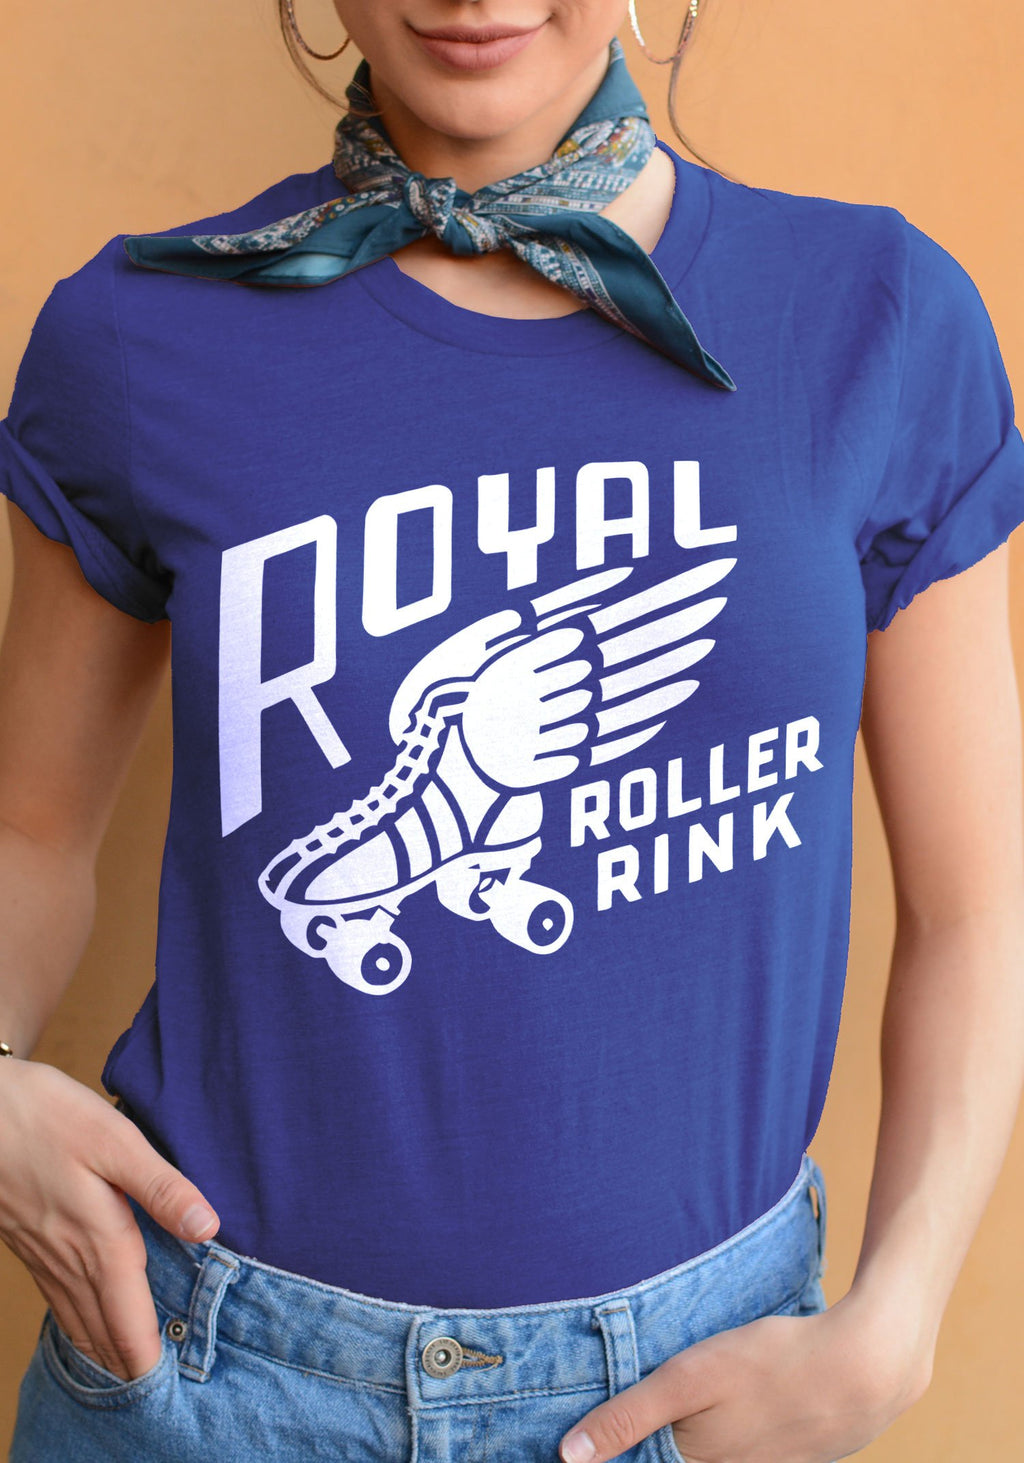 Royal Roller Rink Tee / womens graphic tees / 70s 60s retro vintage style t shirts / roller derby skate skating shirt